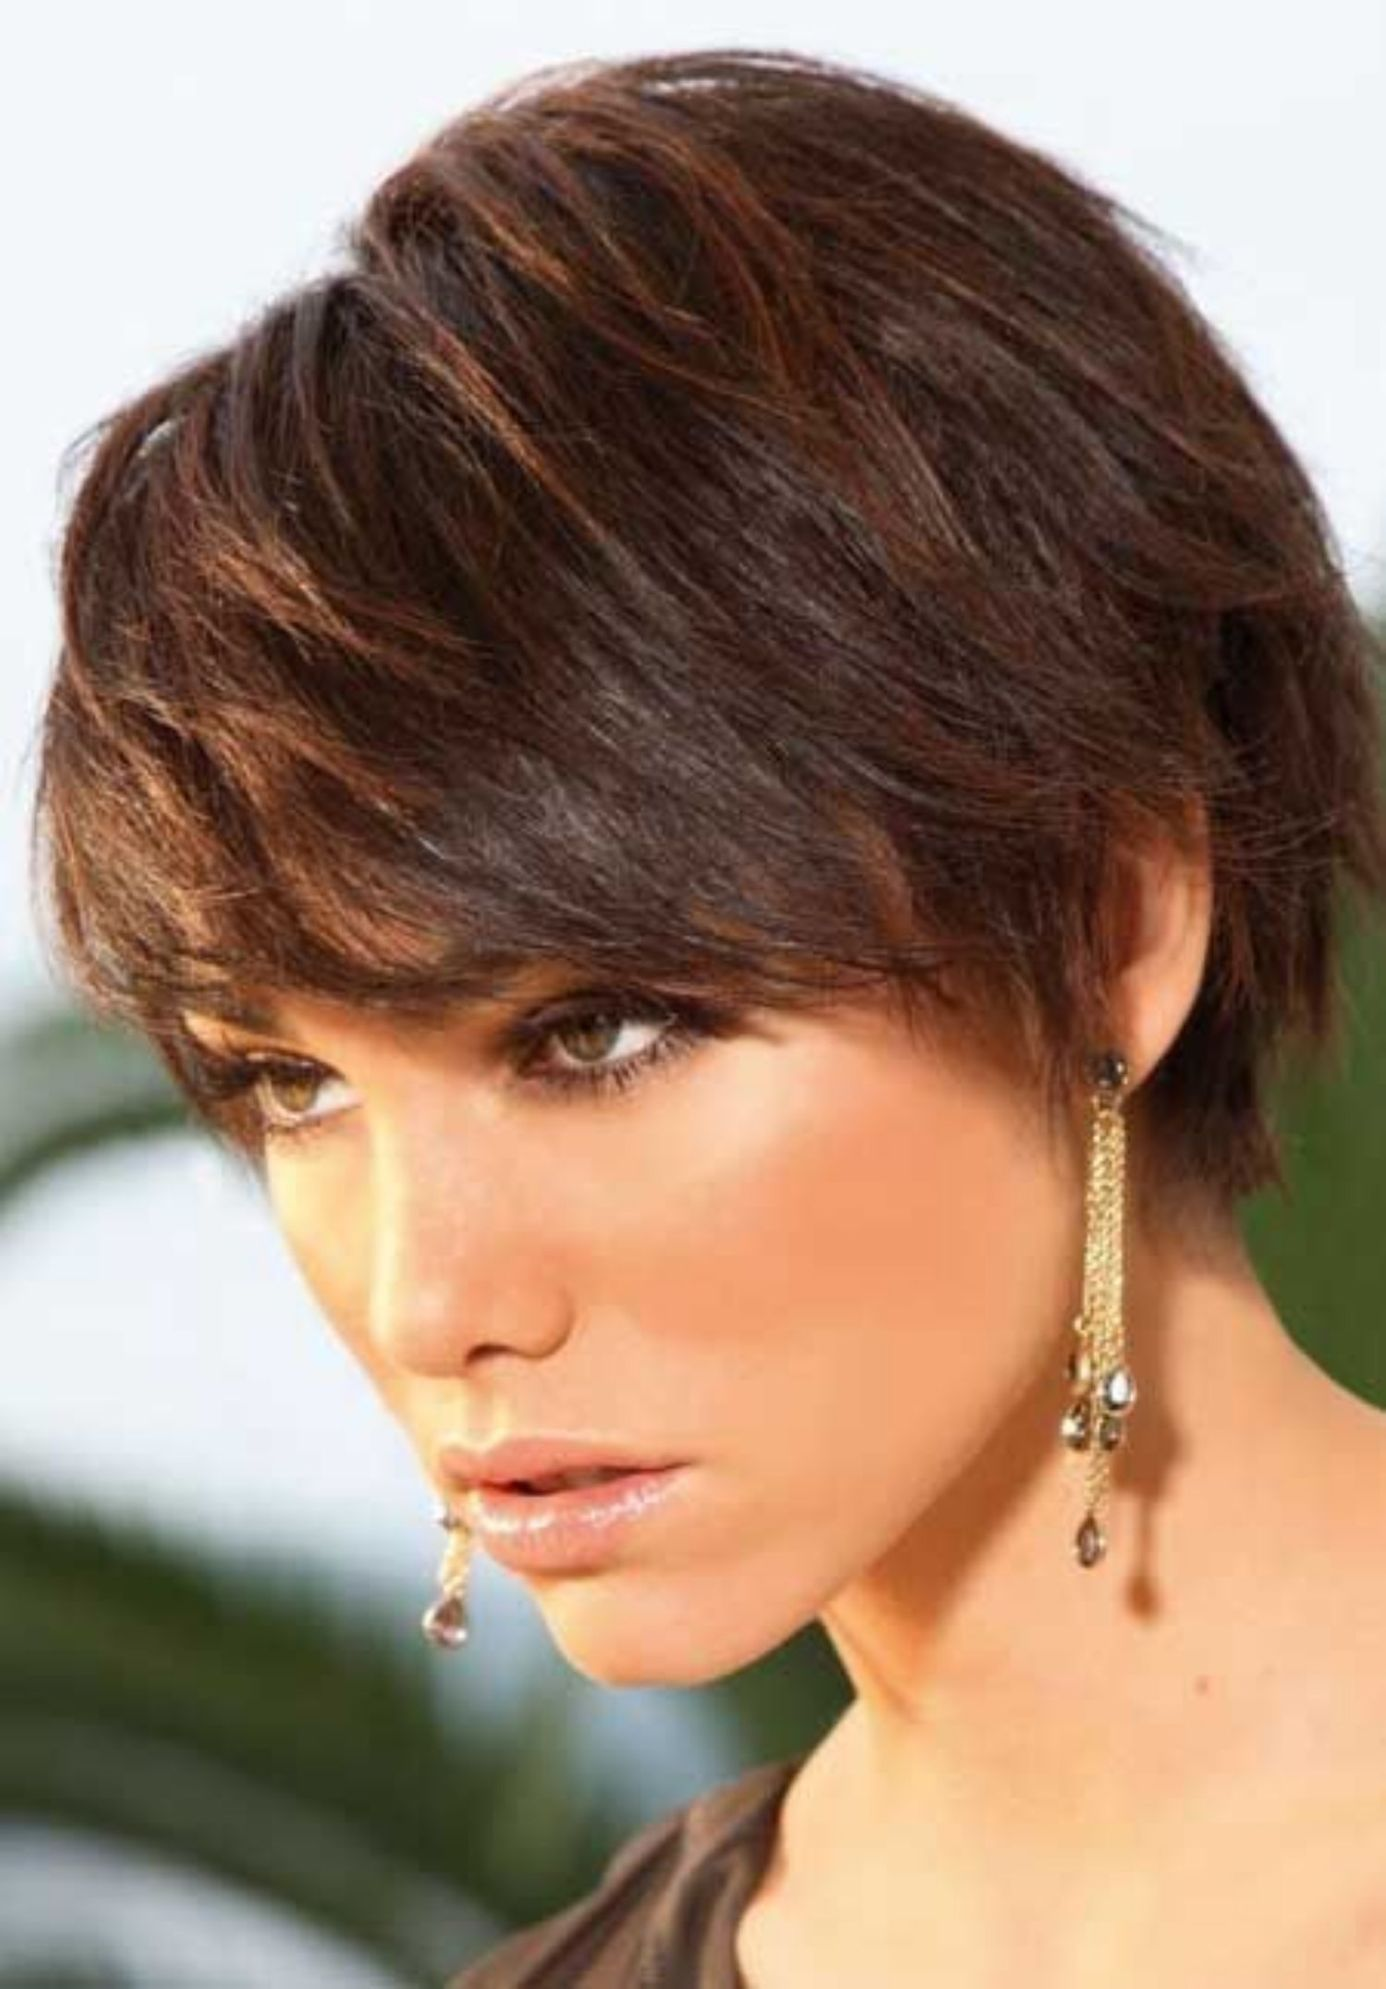 Classy Short Haircuts and Hairstyles for Thick Hair  Hair styles